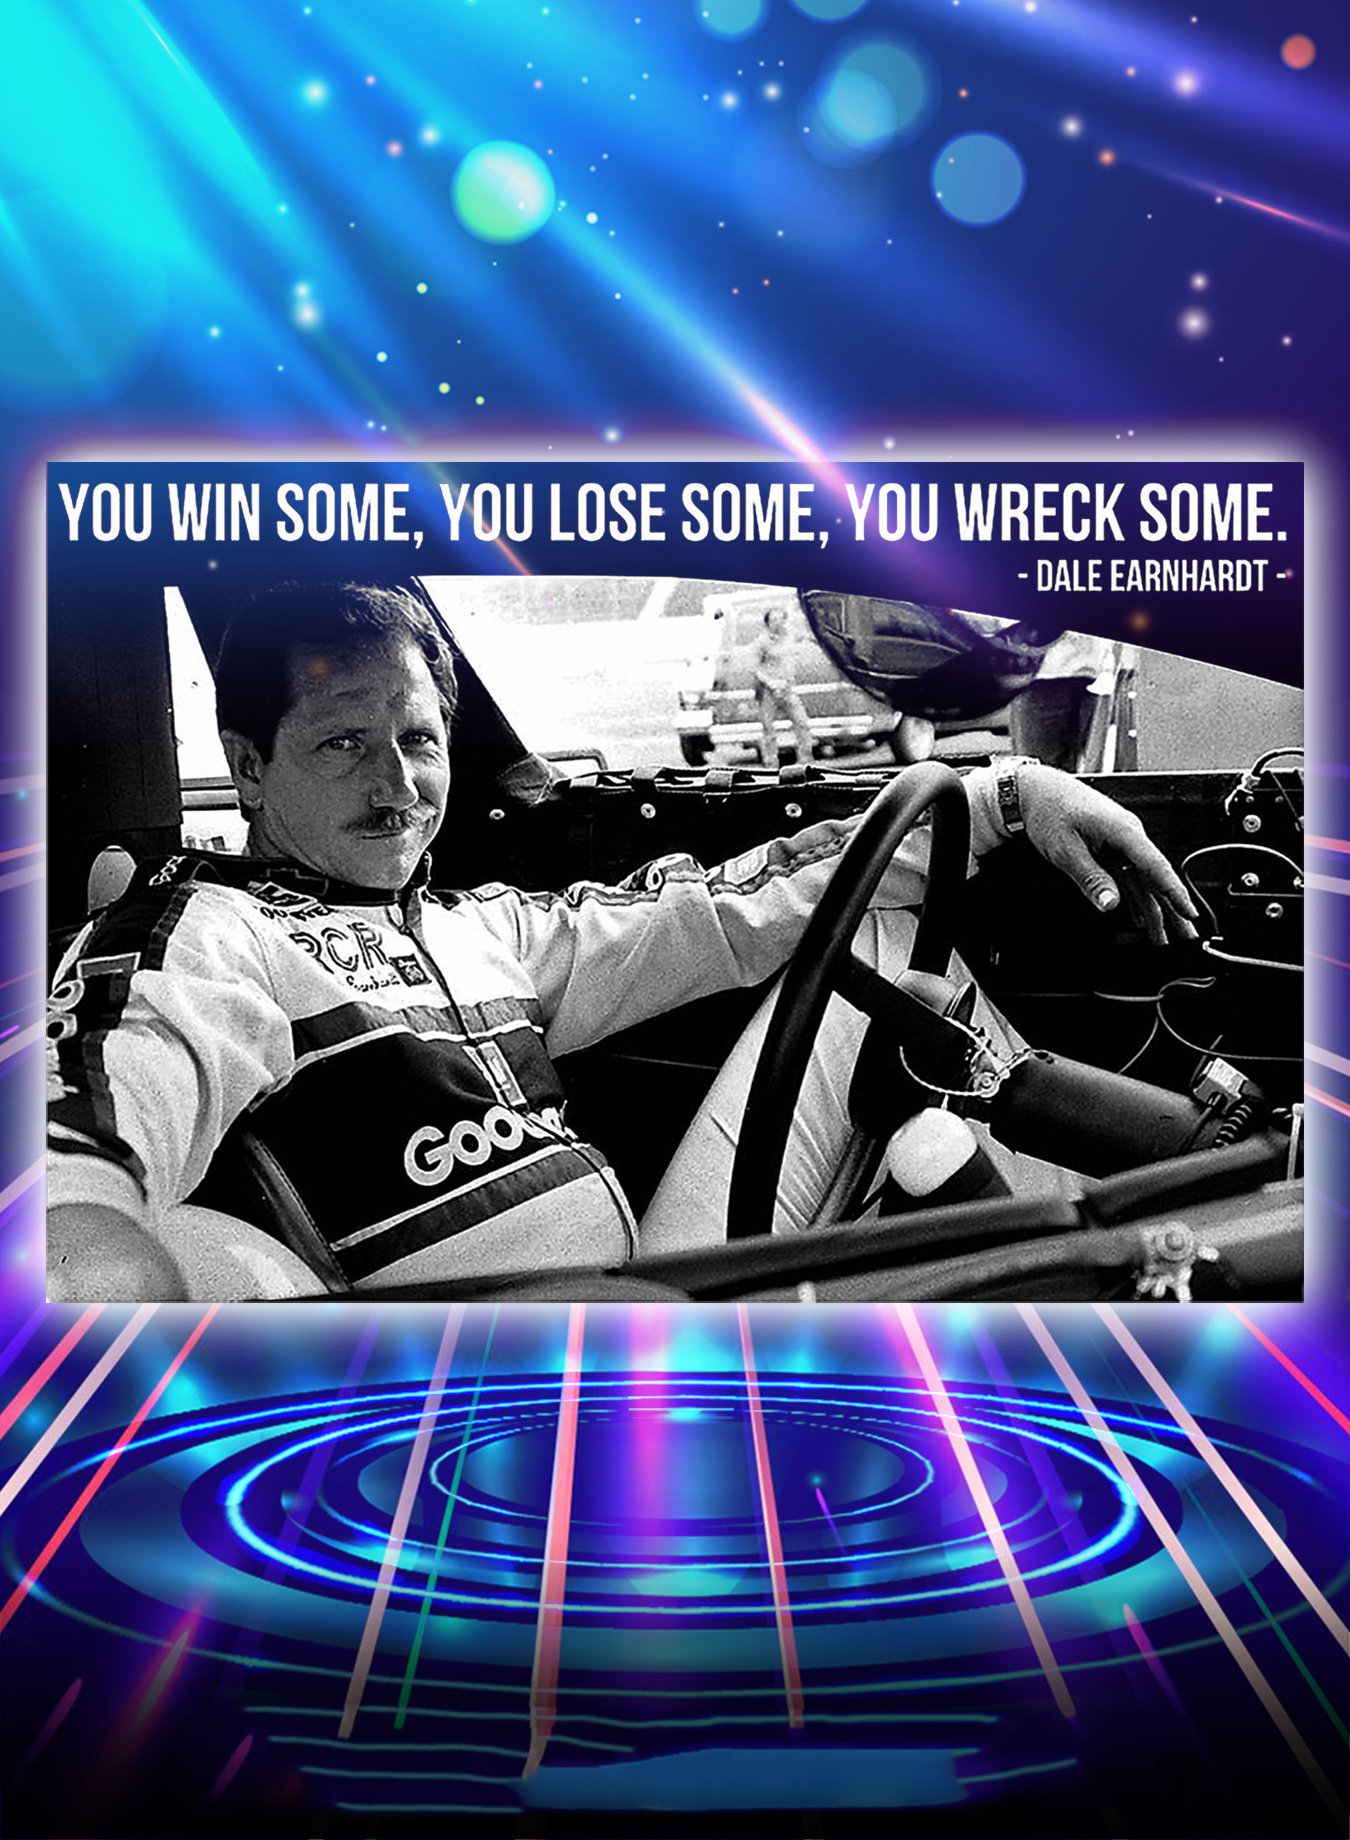 Dale earnhardt you win some you lose some you wreck some poster - A3